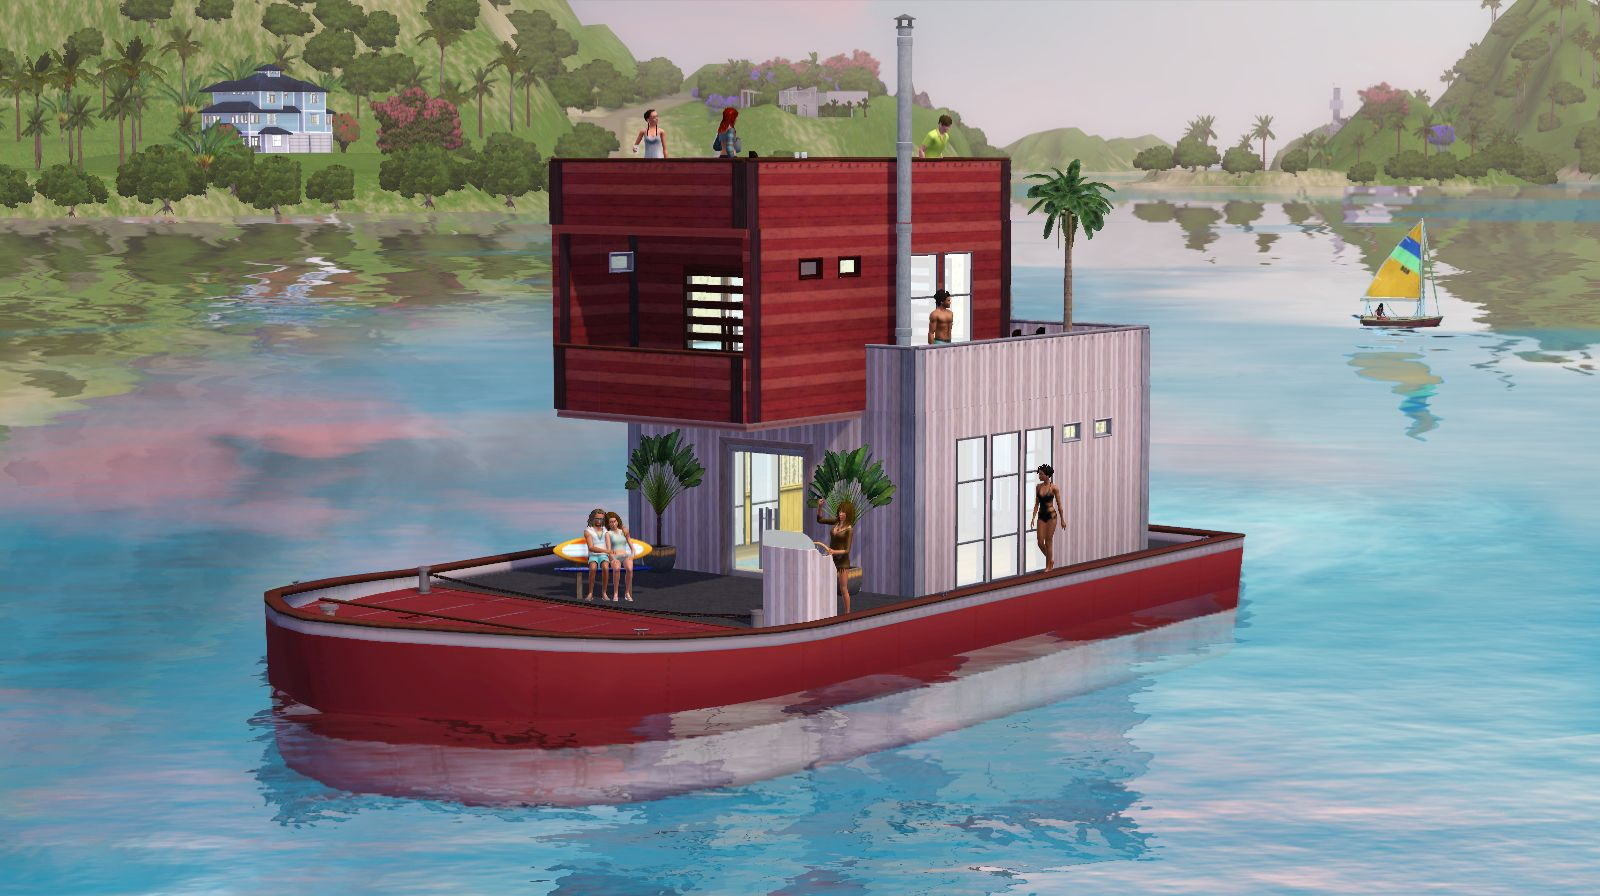 My Sims 3 Blog: 4 New The Sims 3 Island Paradise Pictures